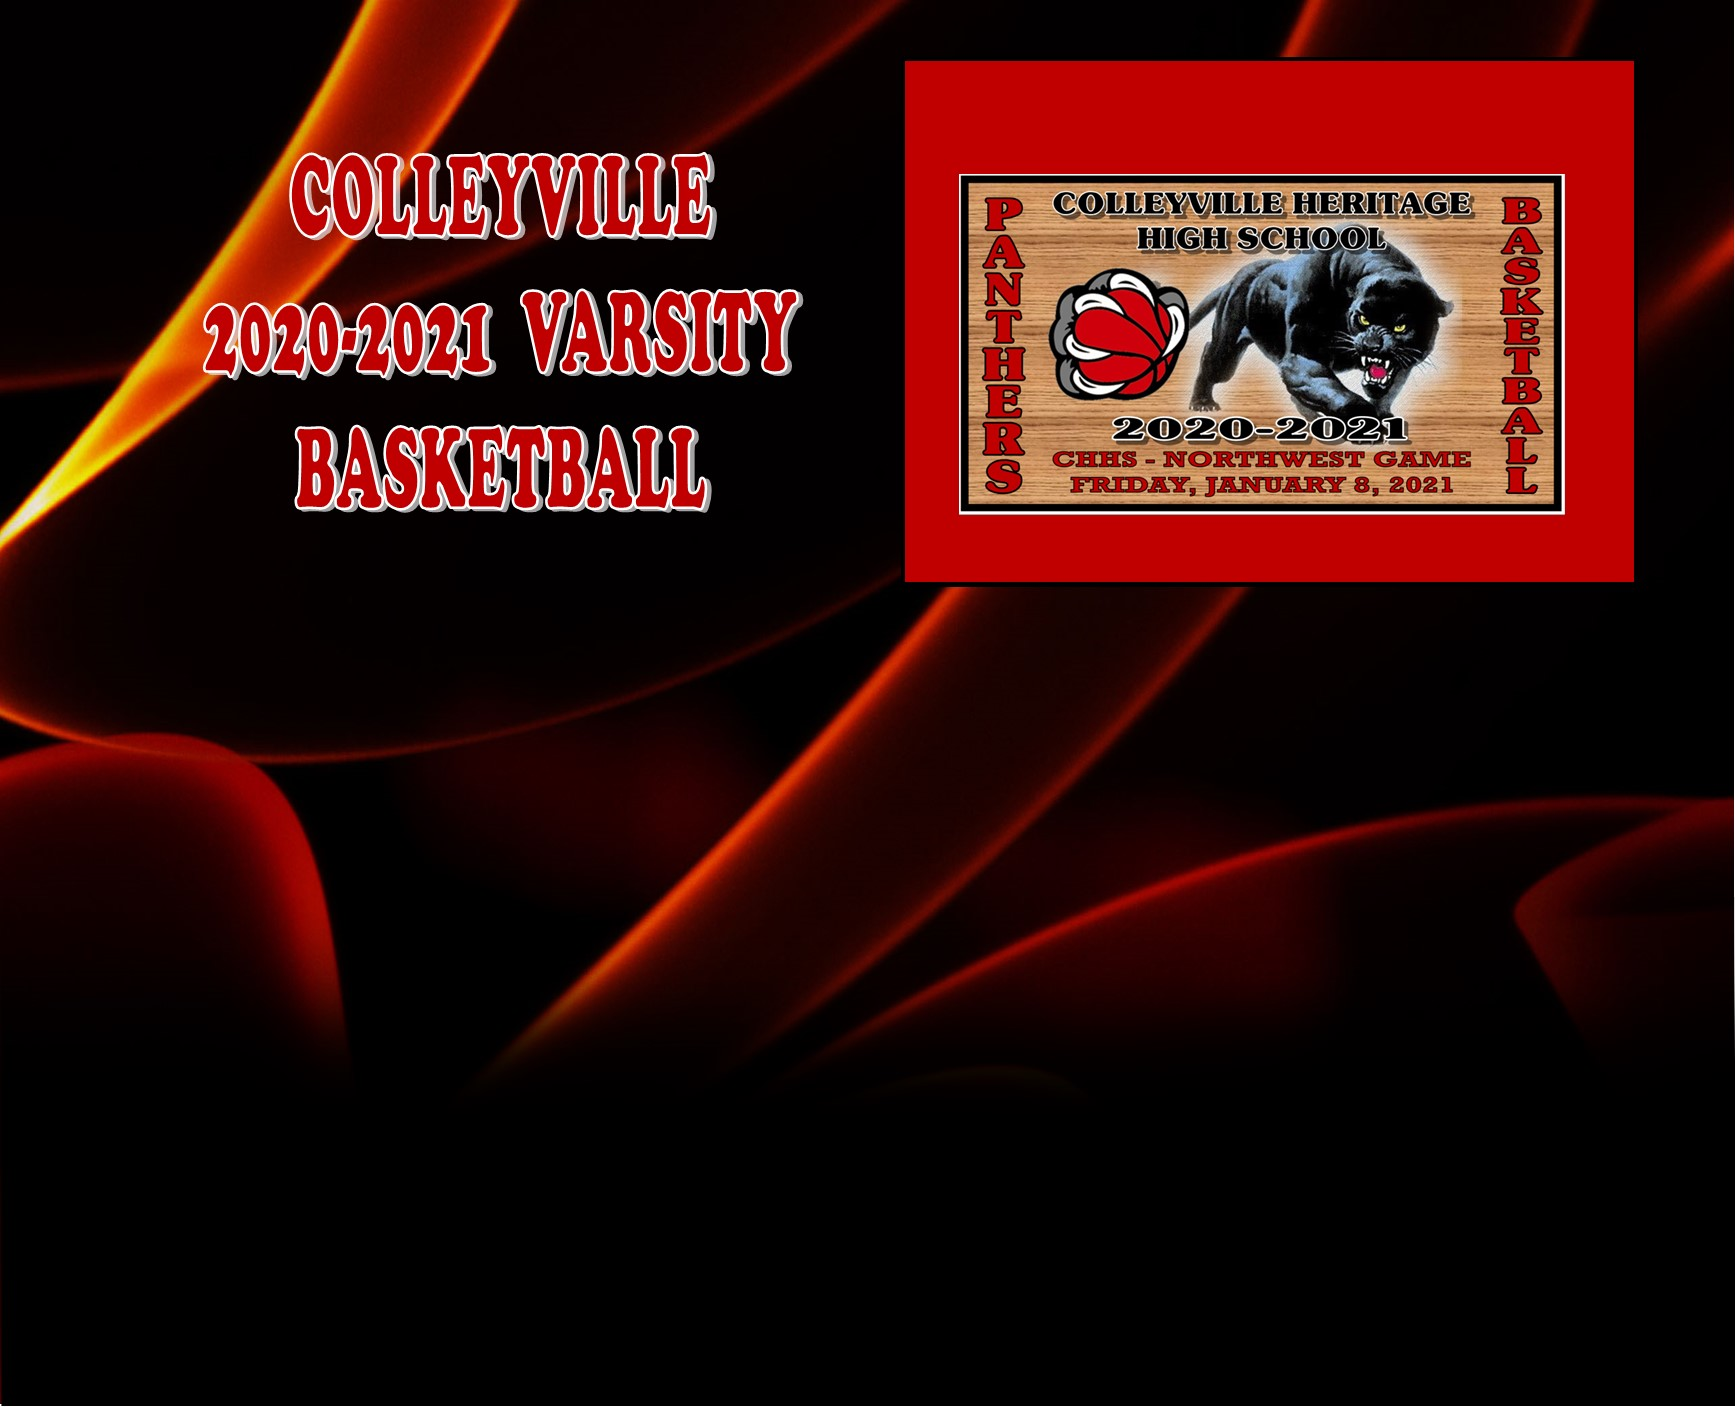 GCISD Basketball: Colleyville Panthers Surge to Top Lake Dallas Falcons 52-40